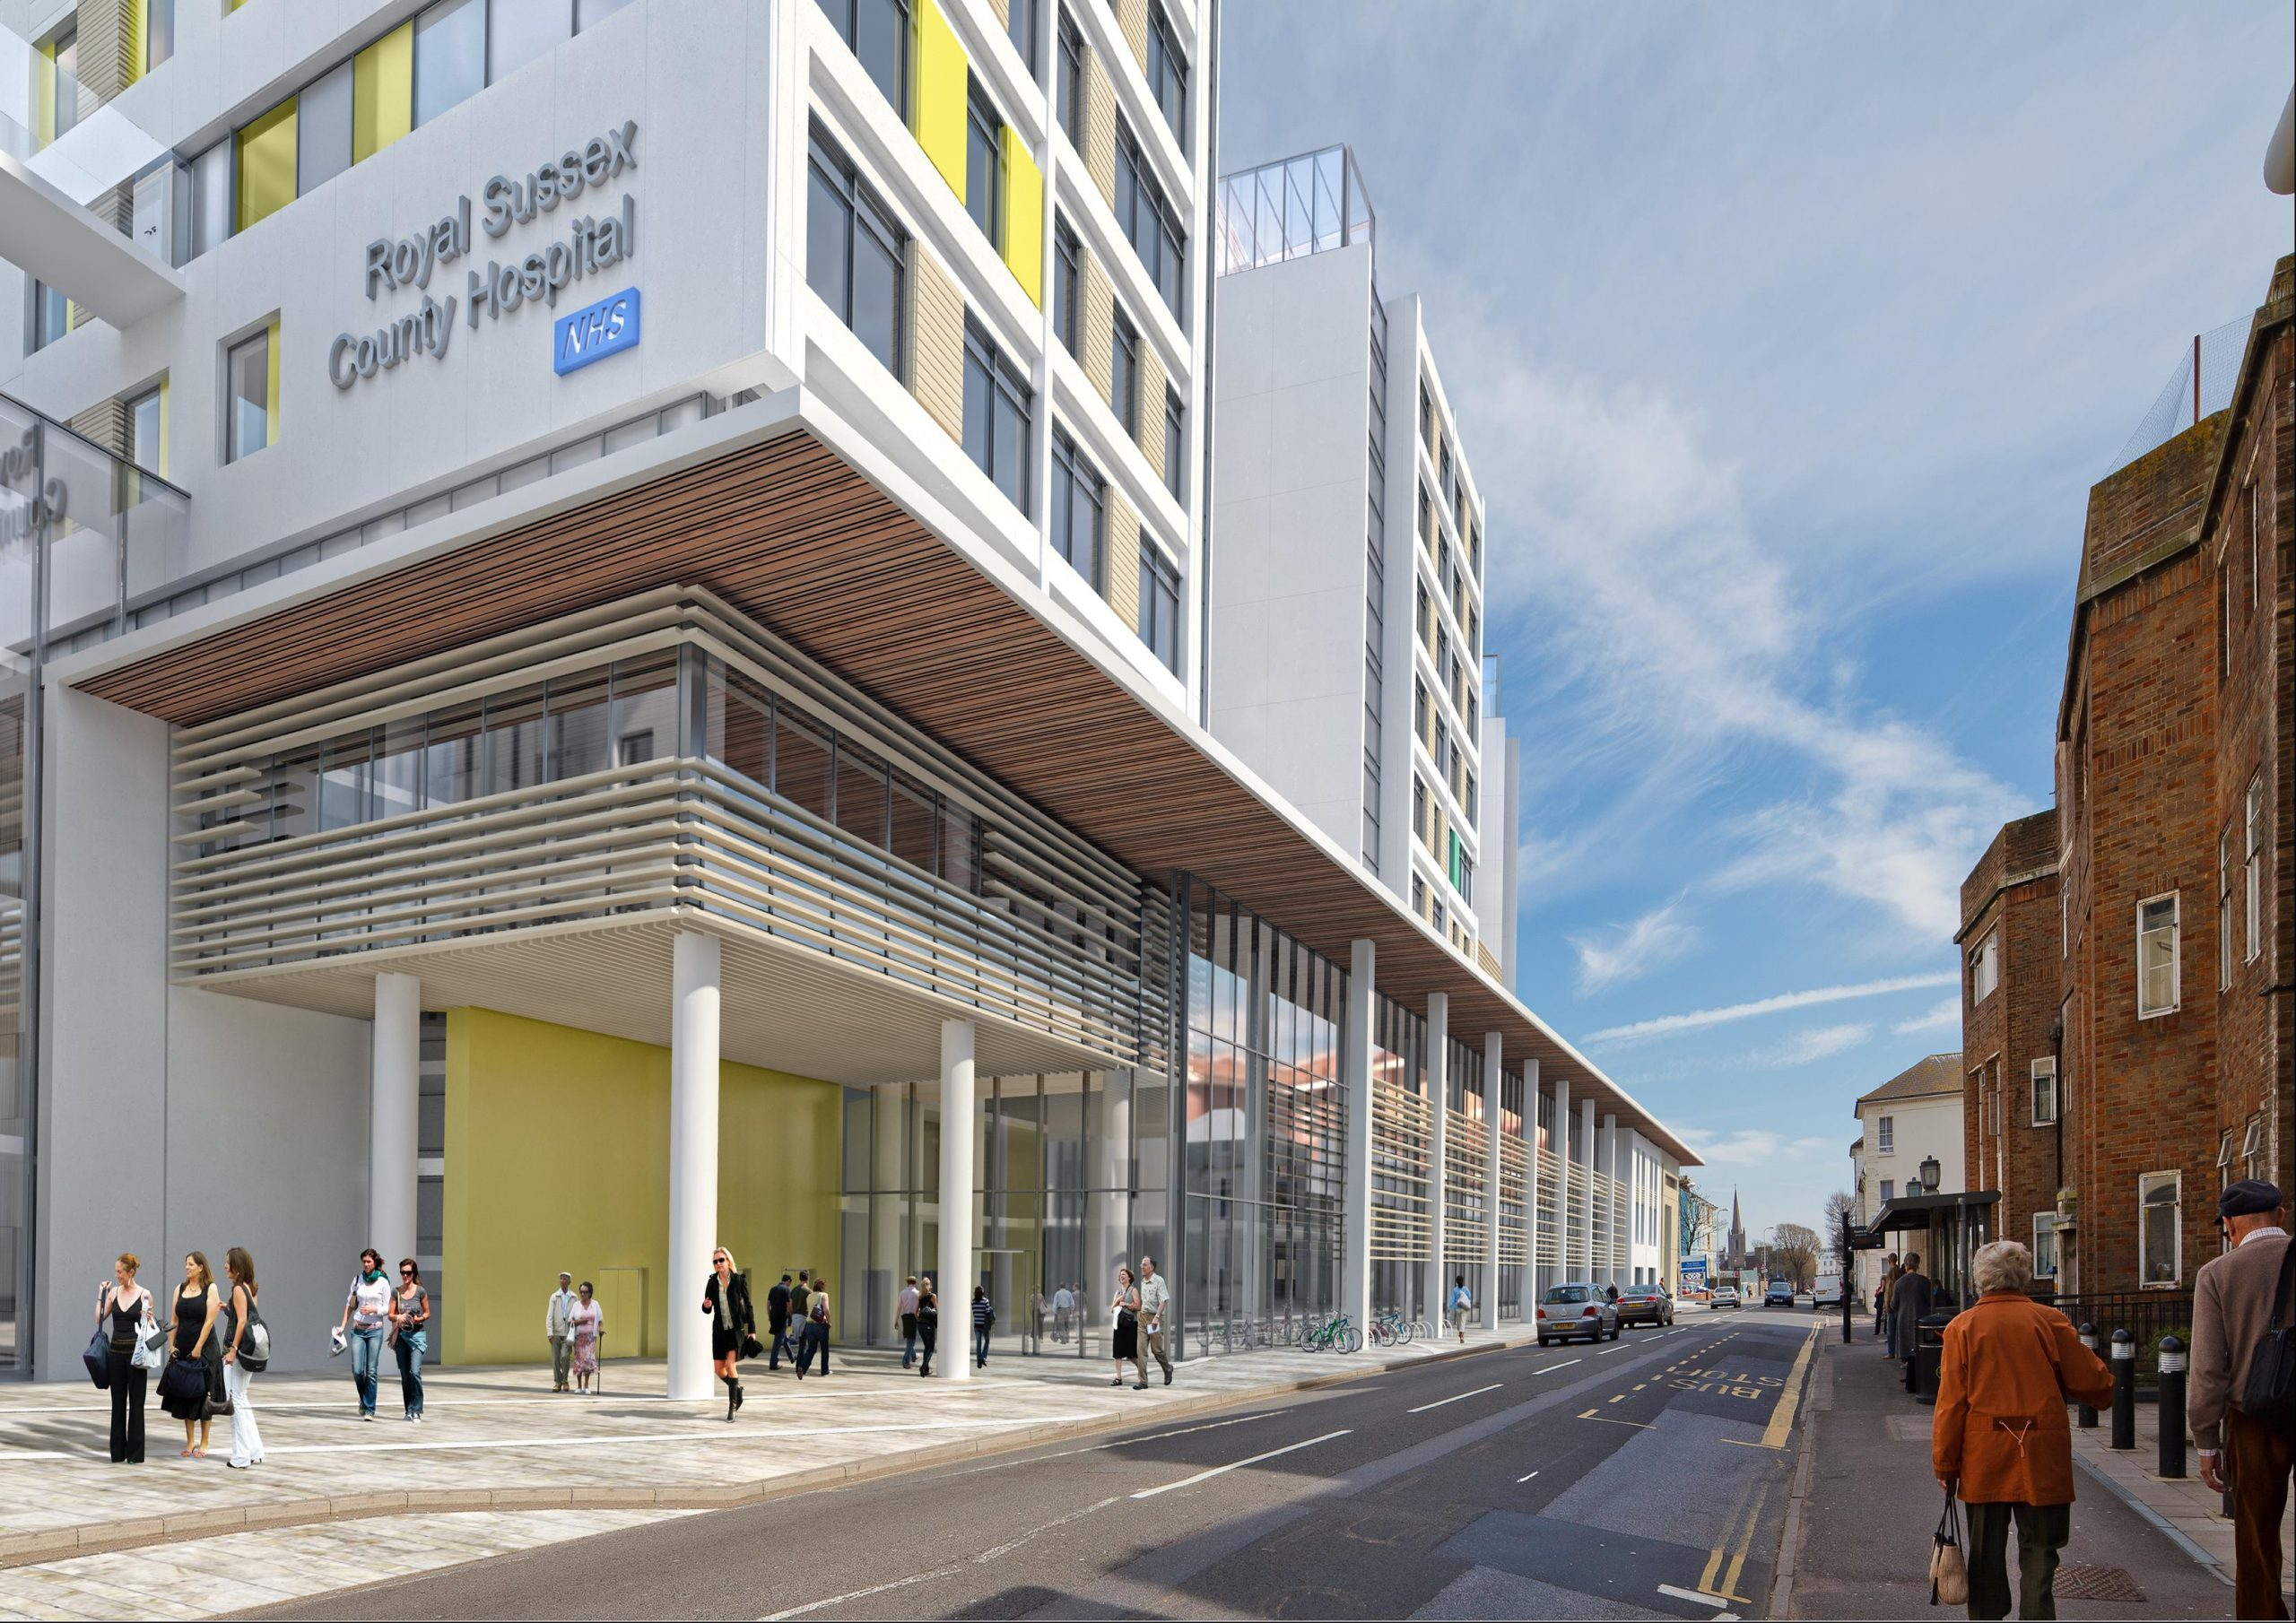 LAING O'ROURKE AWARDS £1.5M FITOUT CONTRACT TO DEANESTOR FOR BRIGHTON 3TS HOSPITAL REDEVELOPMENT